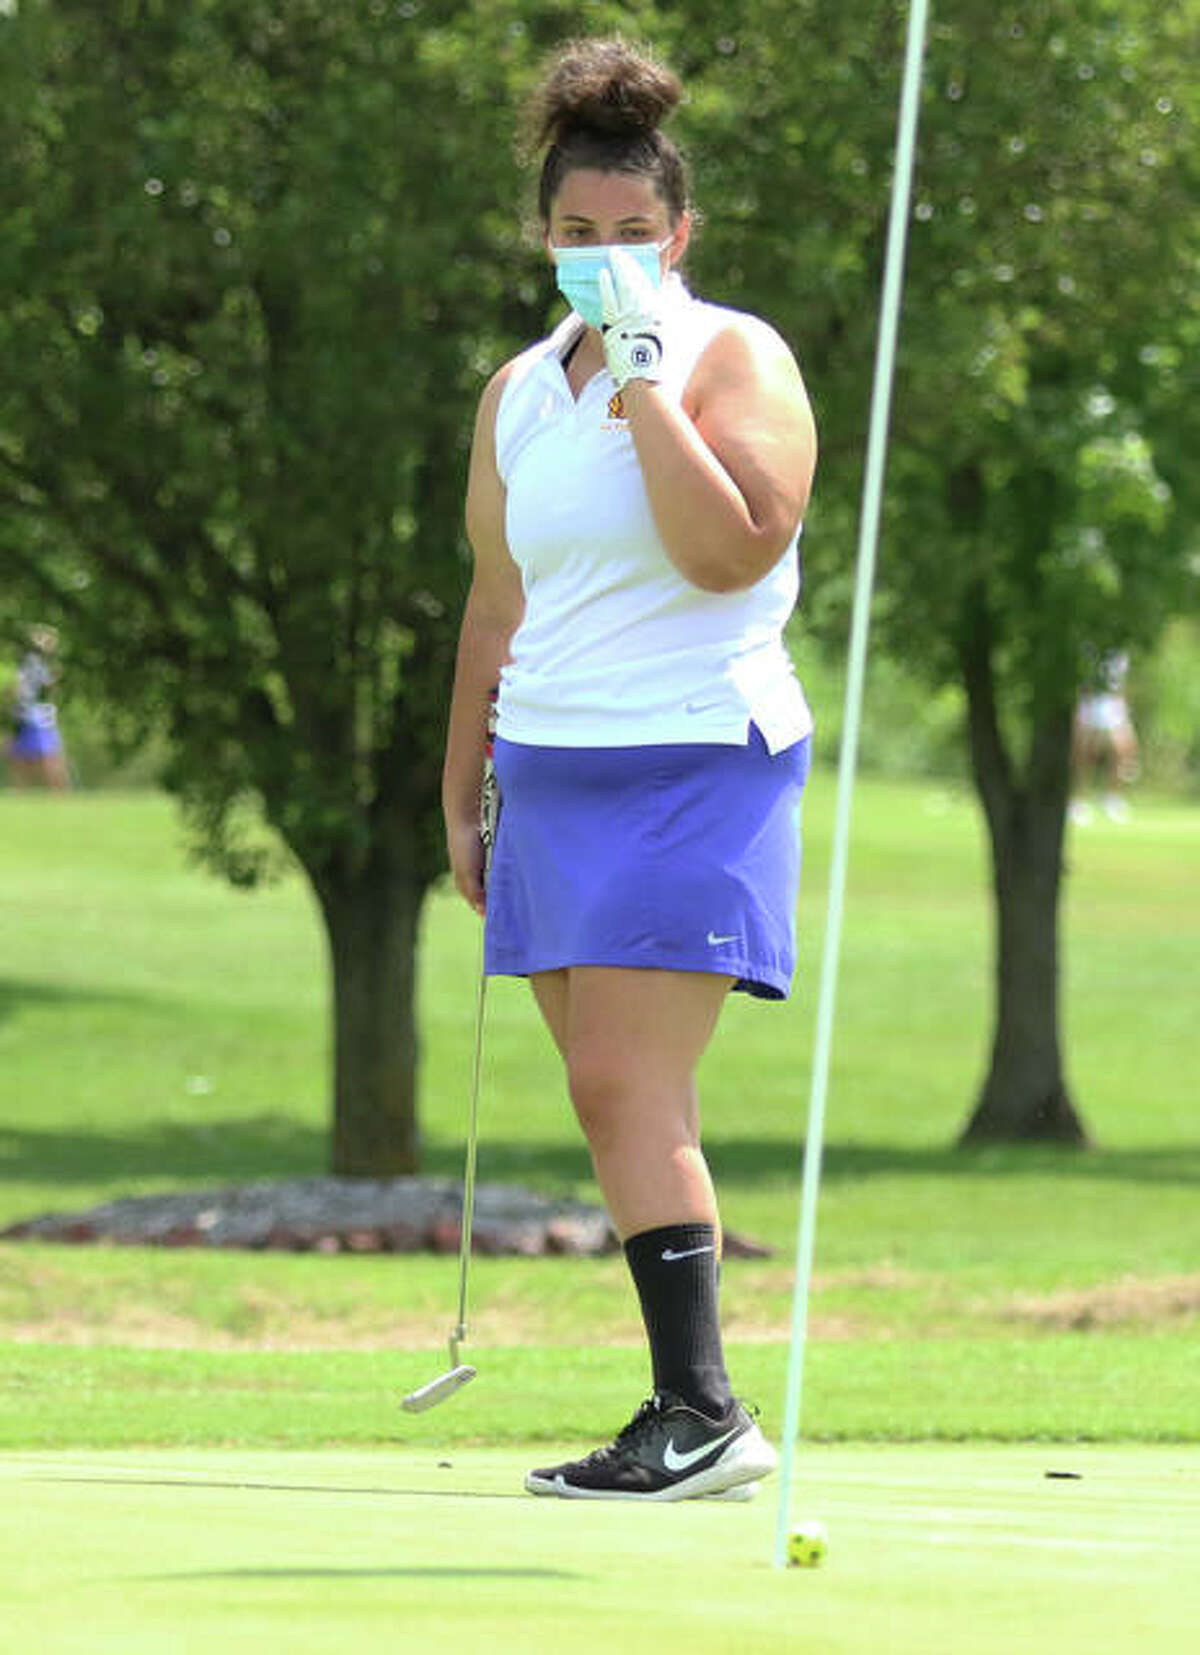 Roxana's Sarah Floyd watches her putt roll into the cup on the seventh hole at The Legacy golf course in last Tuesday's Madison County Tournament in Granite City. On Monday, Floyd shot 48 to help the Shells go 1-1 in a triangular at Cloverleaf in Alton.